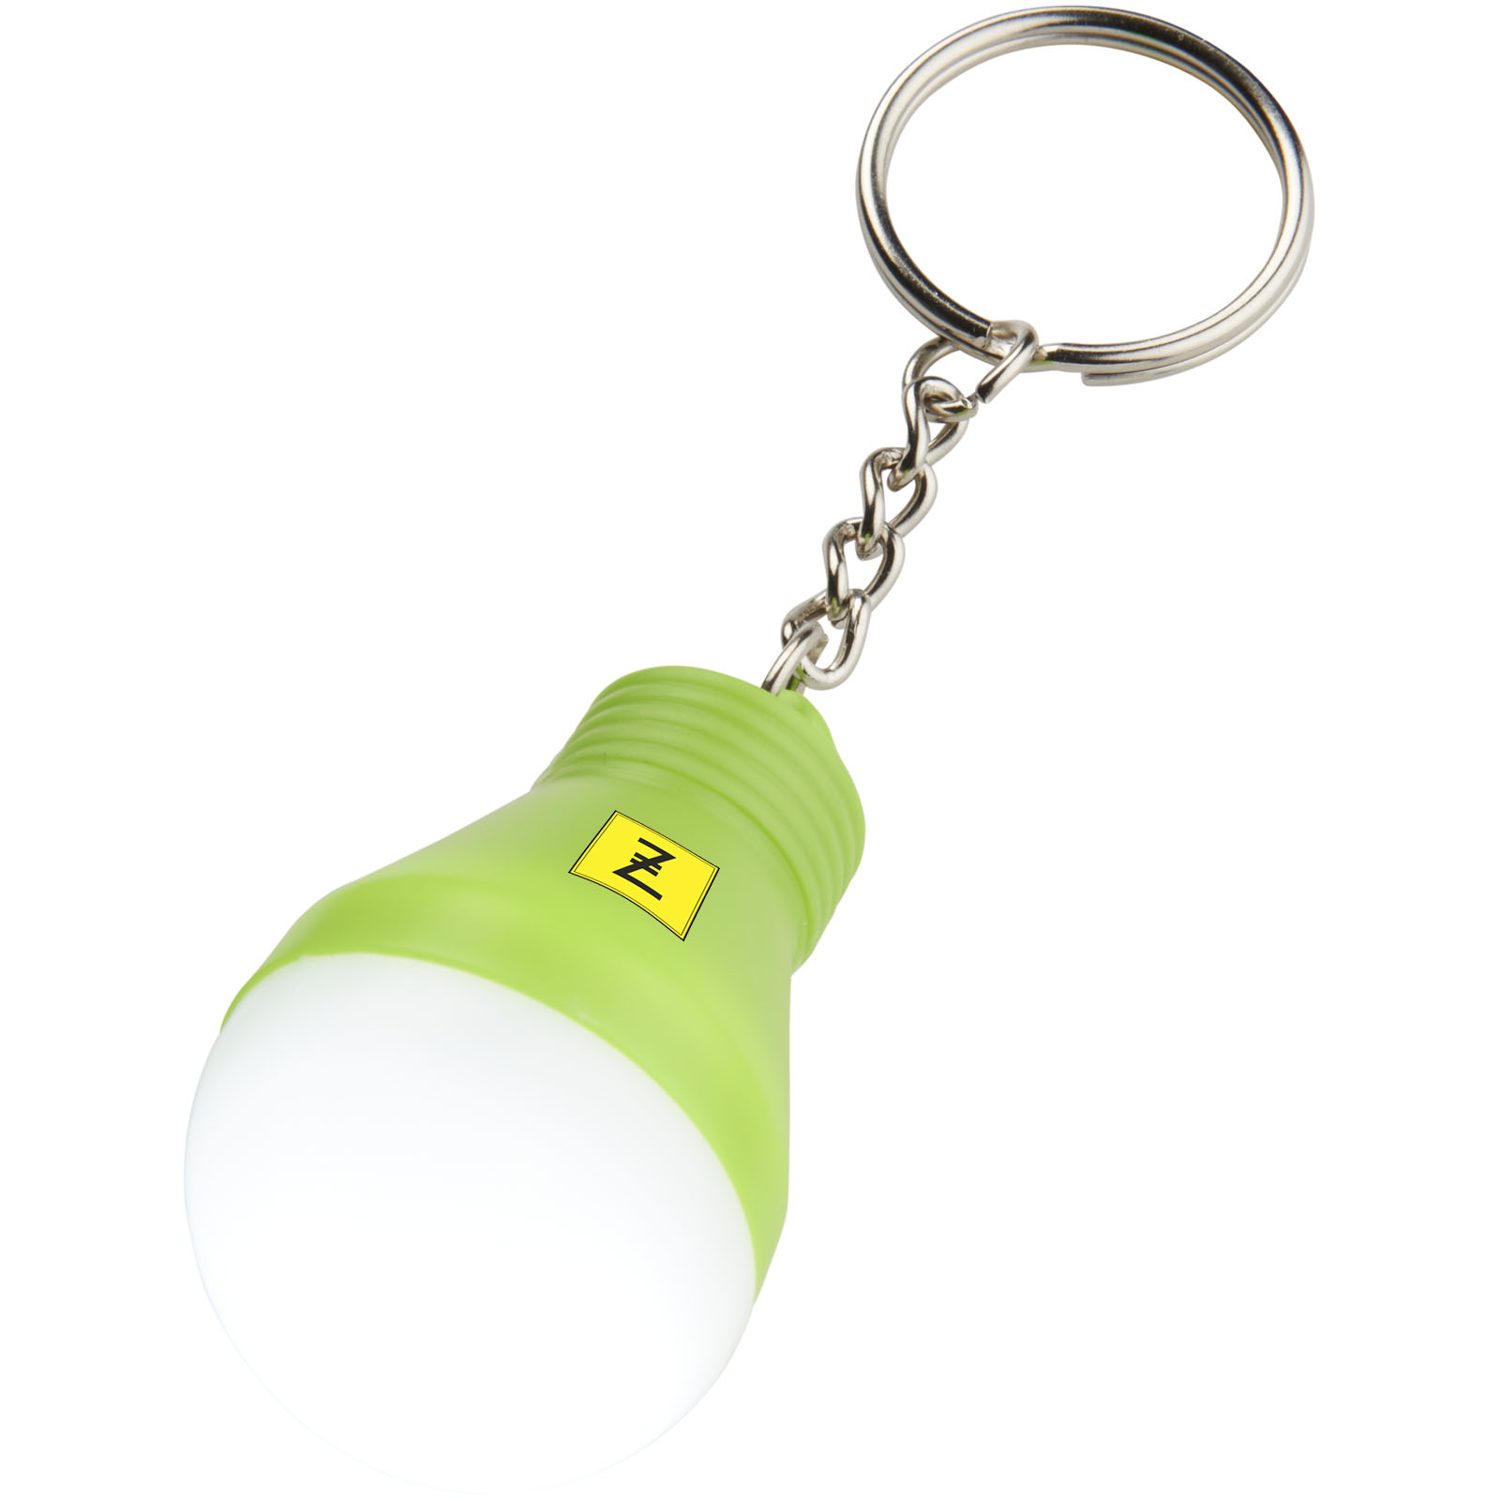 Aquila Led Key Light